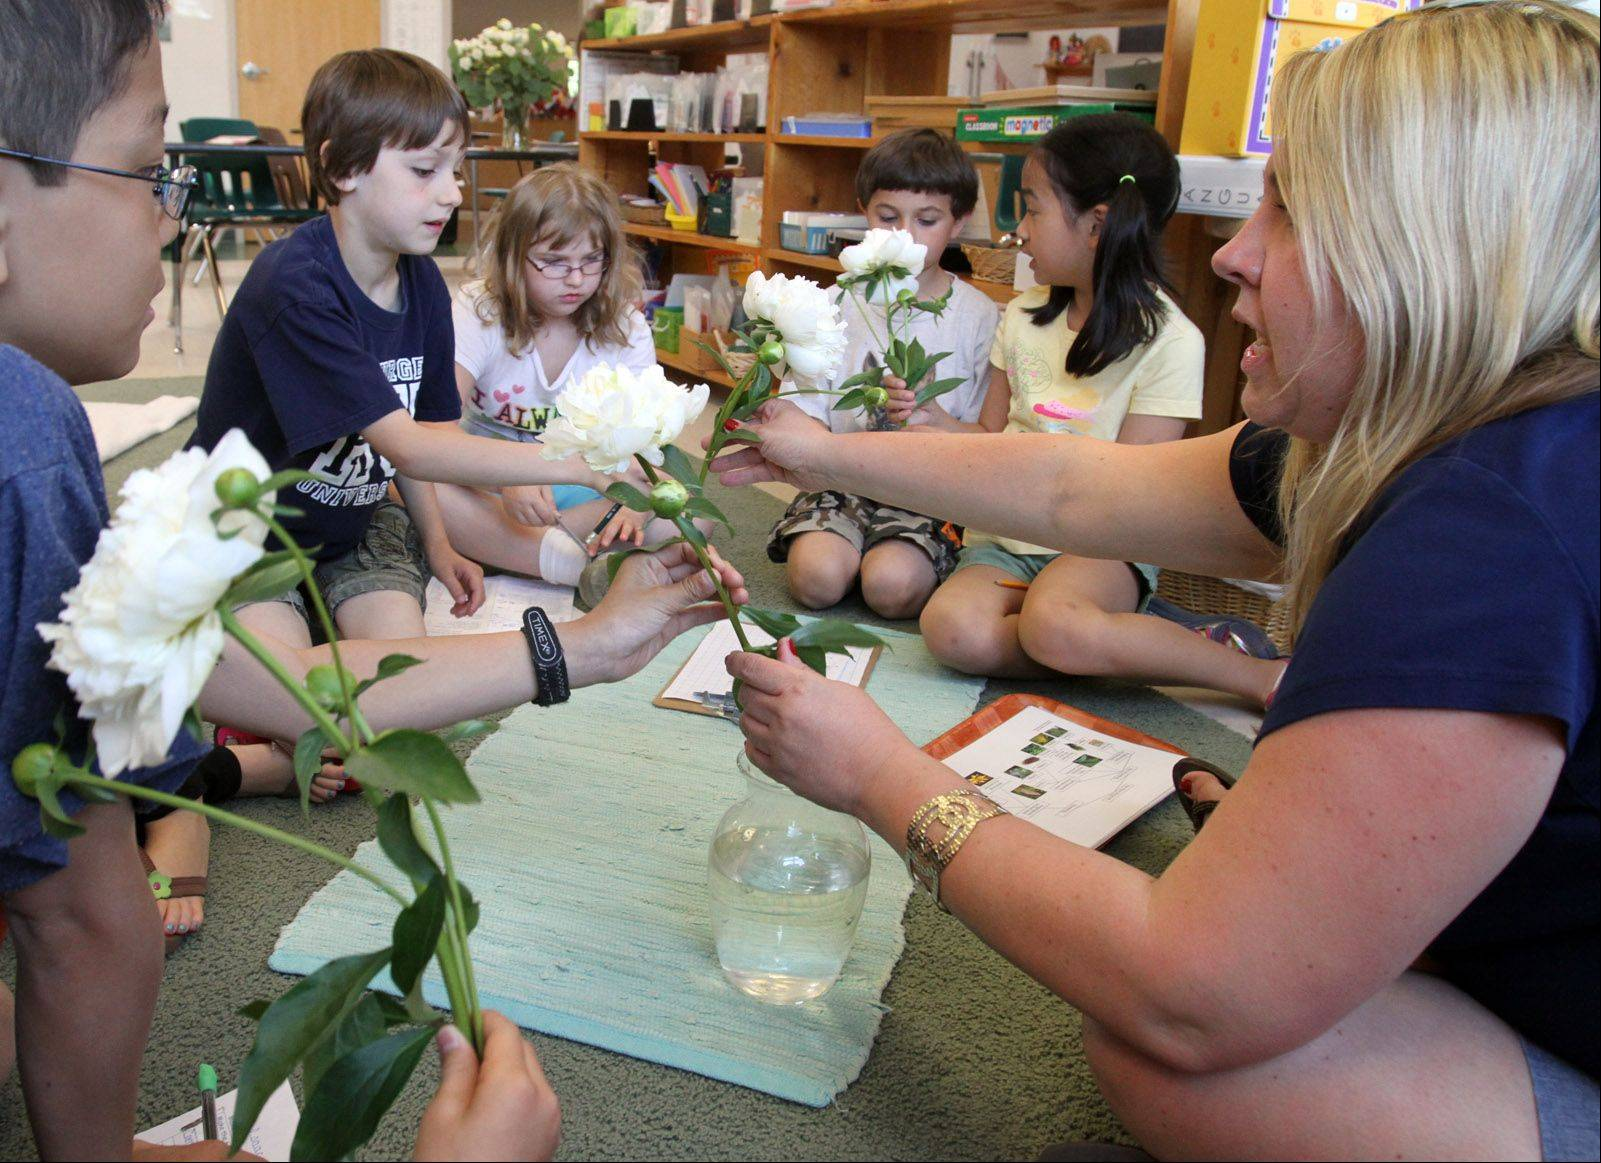 George LeClaire/gleclaire@dailyherald.comSharon Reisenbuchler directress (teacher), teaches 6-9 year-olds about flowers at the Montessori school in Wheeling on Wednesday, May 23.